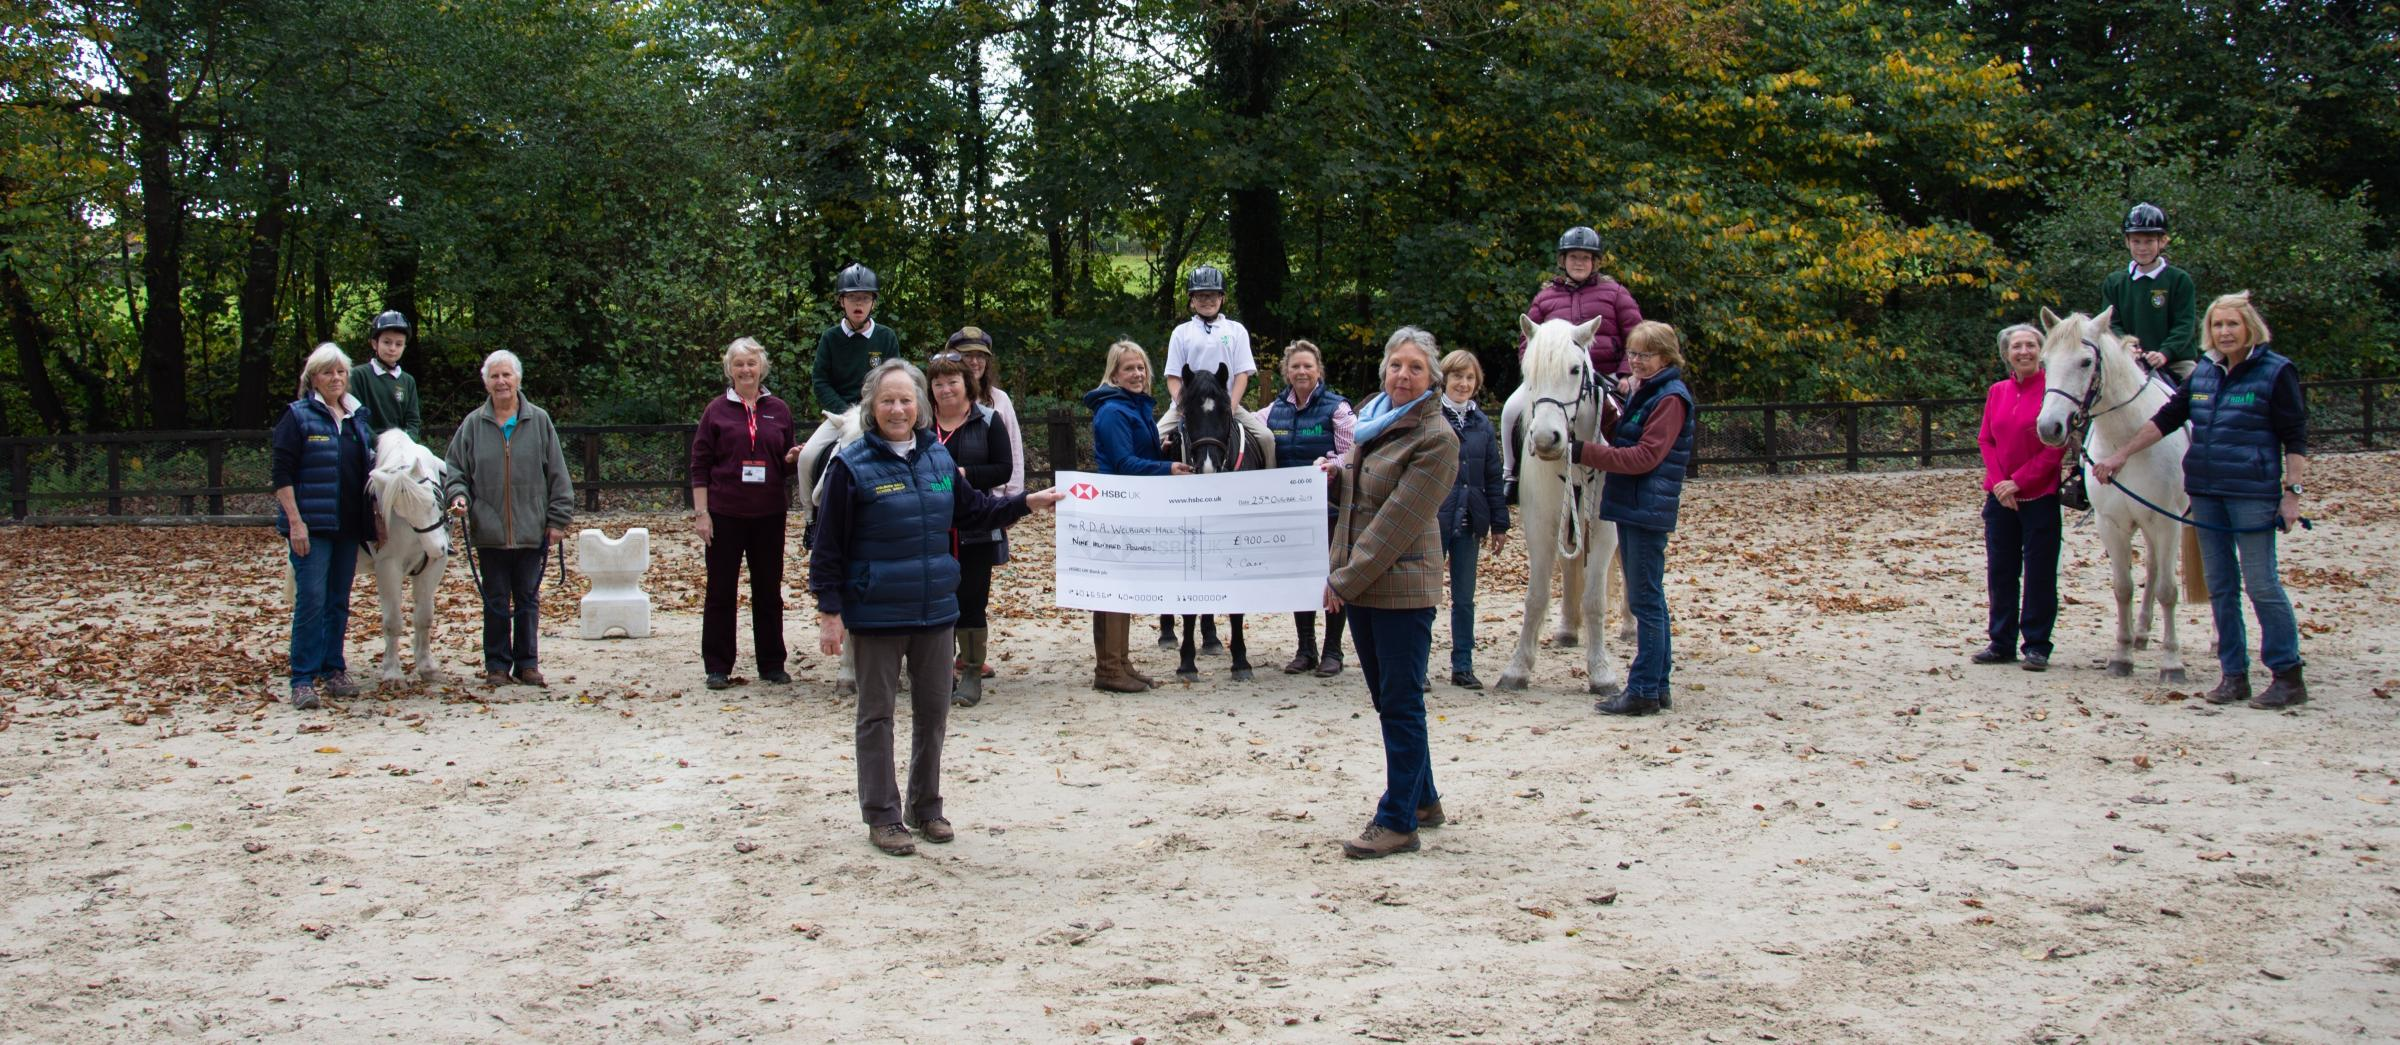 The presentation of a cheque for £900 to Riding for the Disabled at Welburn Hall School, presented on behalf of The Ladies' Section of Kirkbymoorside Golf Club